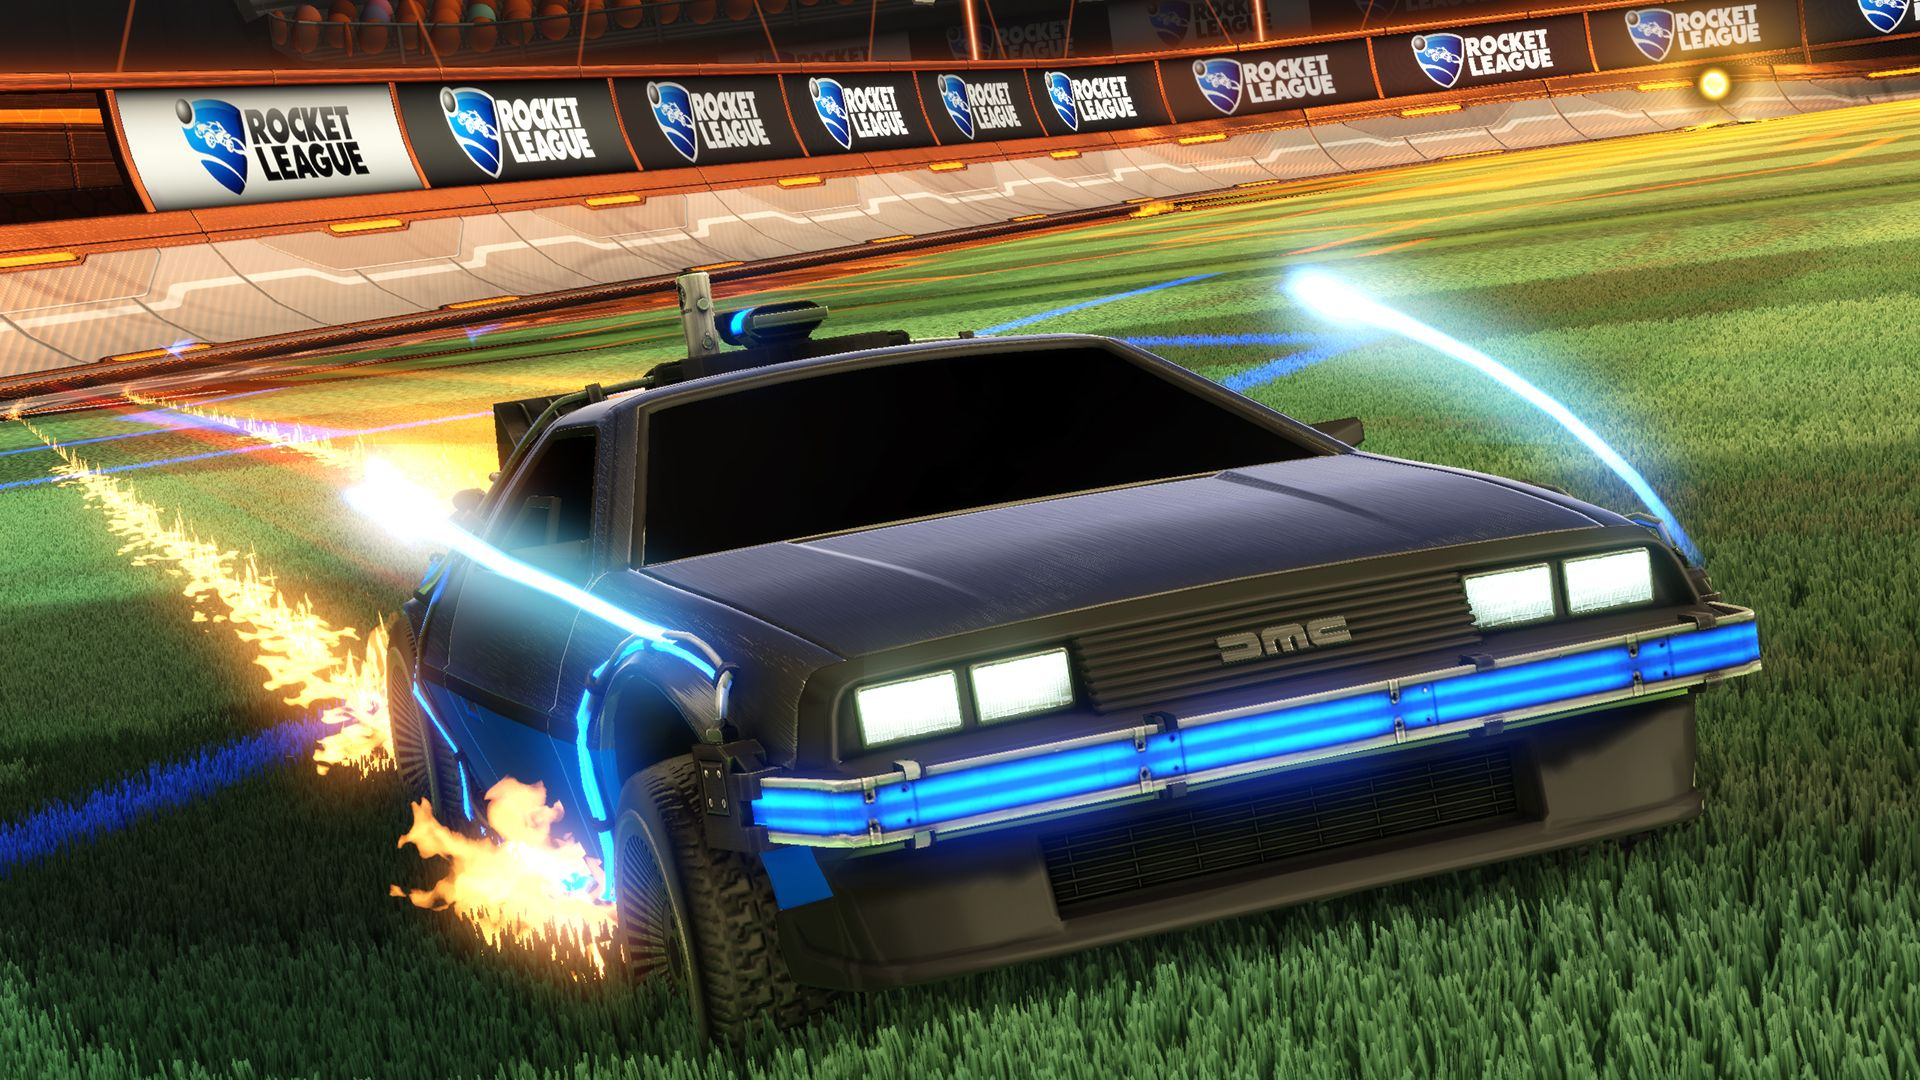 Rocket League's Back To The Future DLC Is Hot Rocket